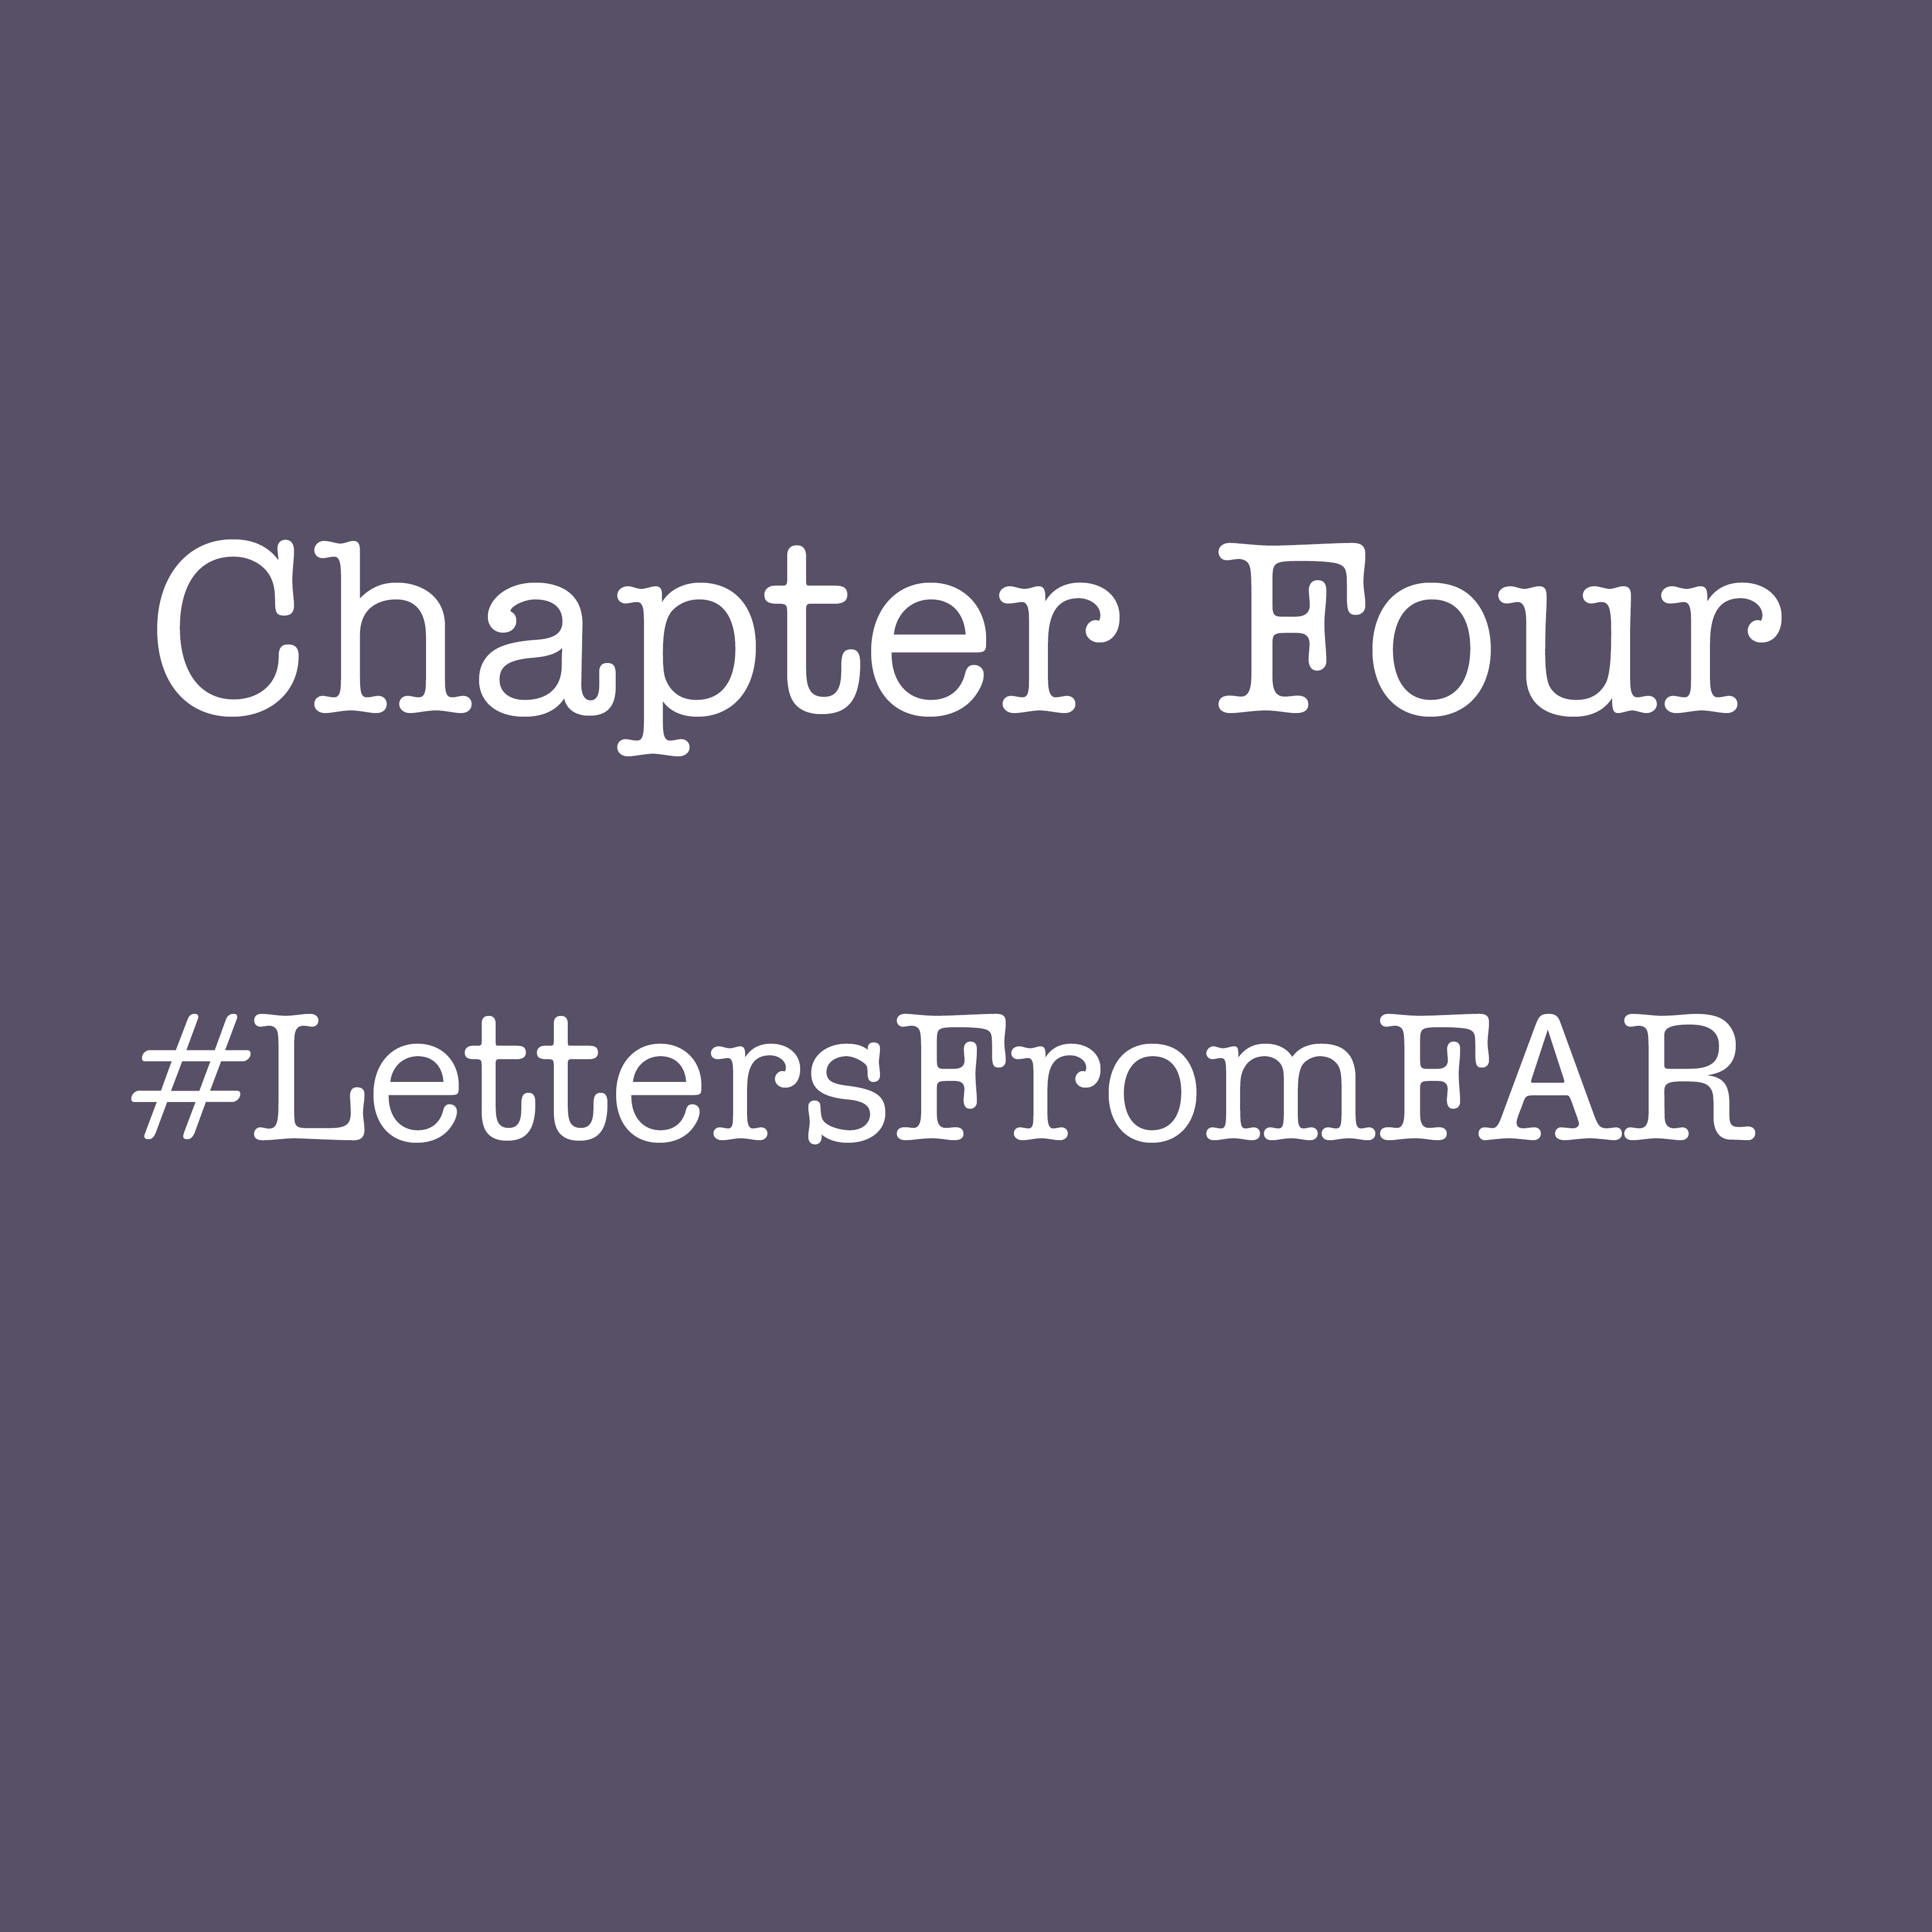 Chapter Four: Letters from FAR